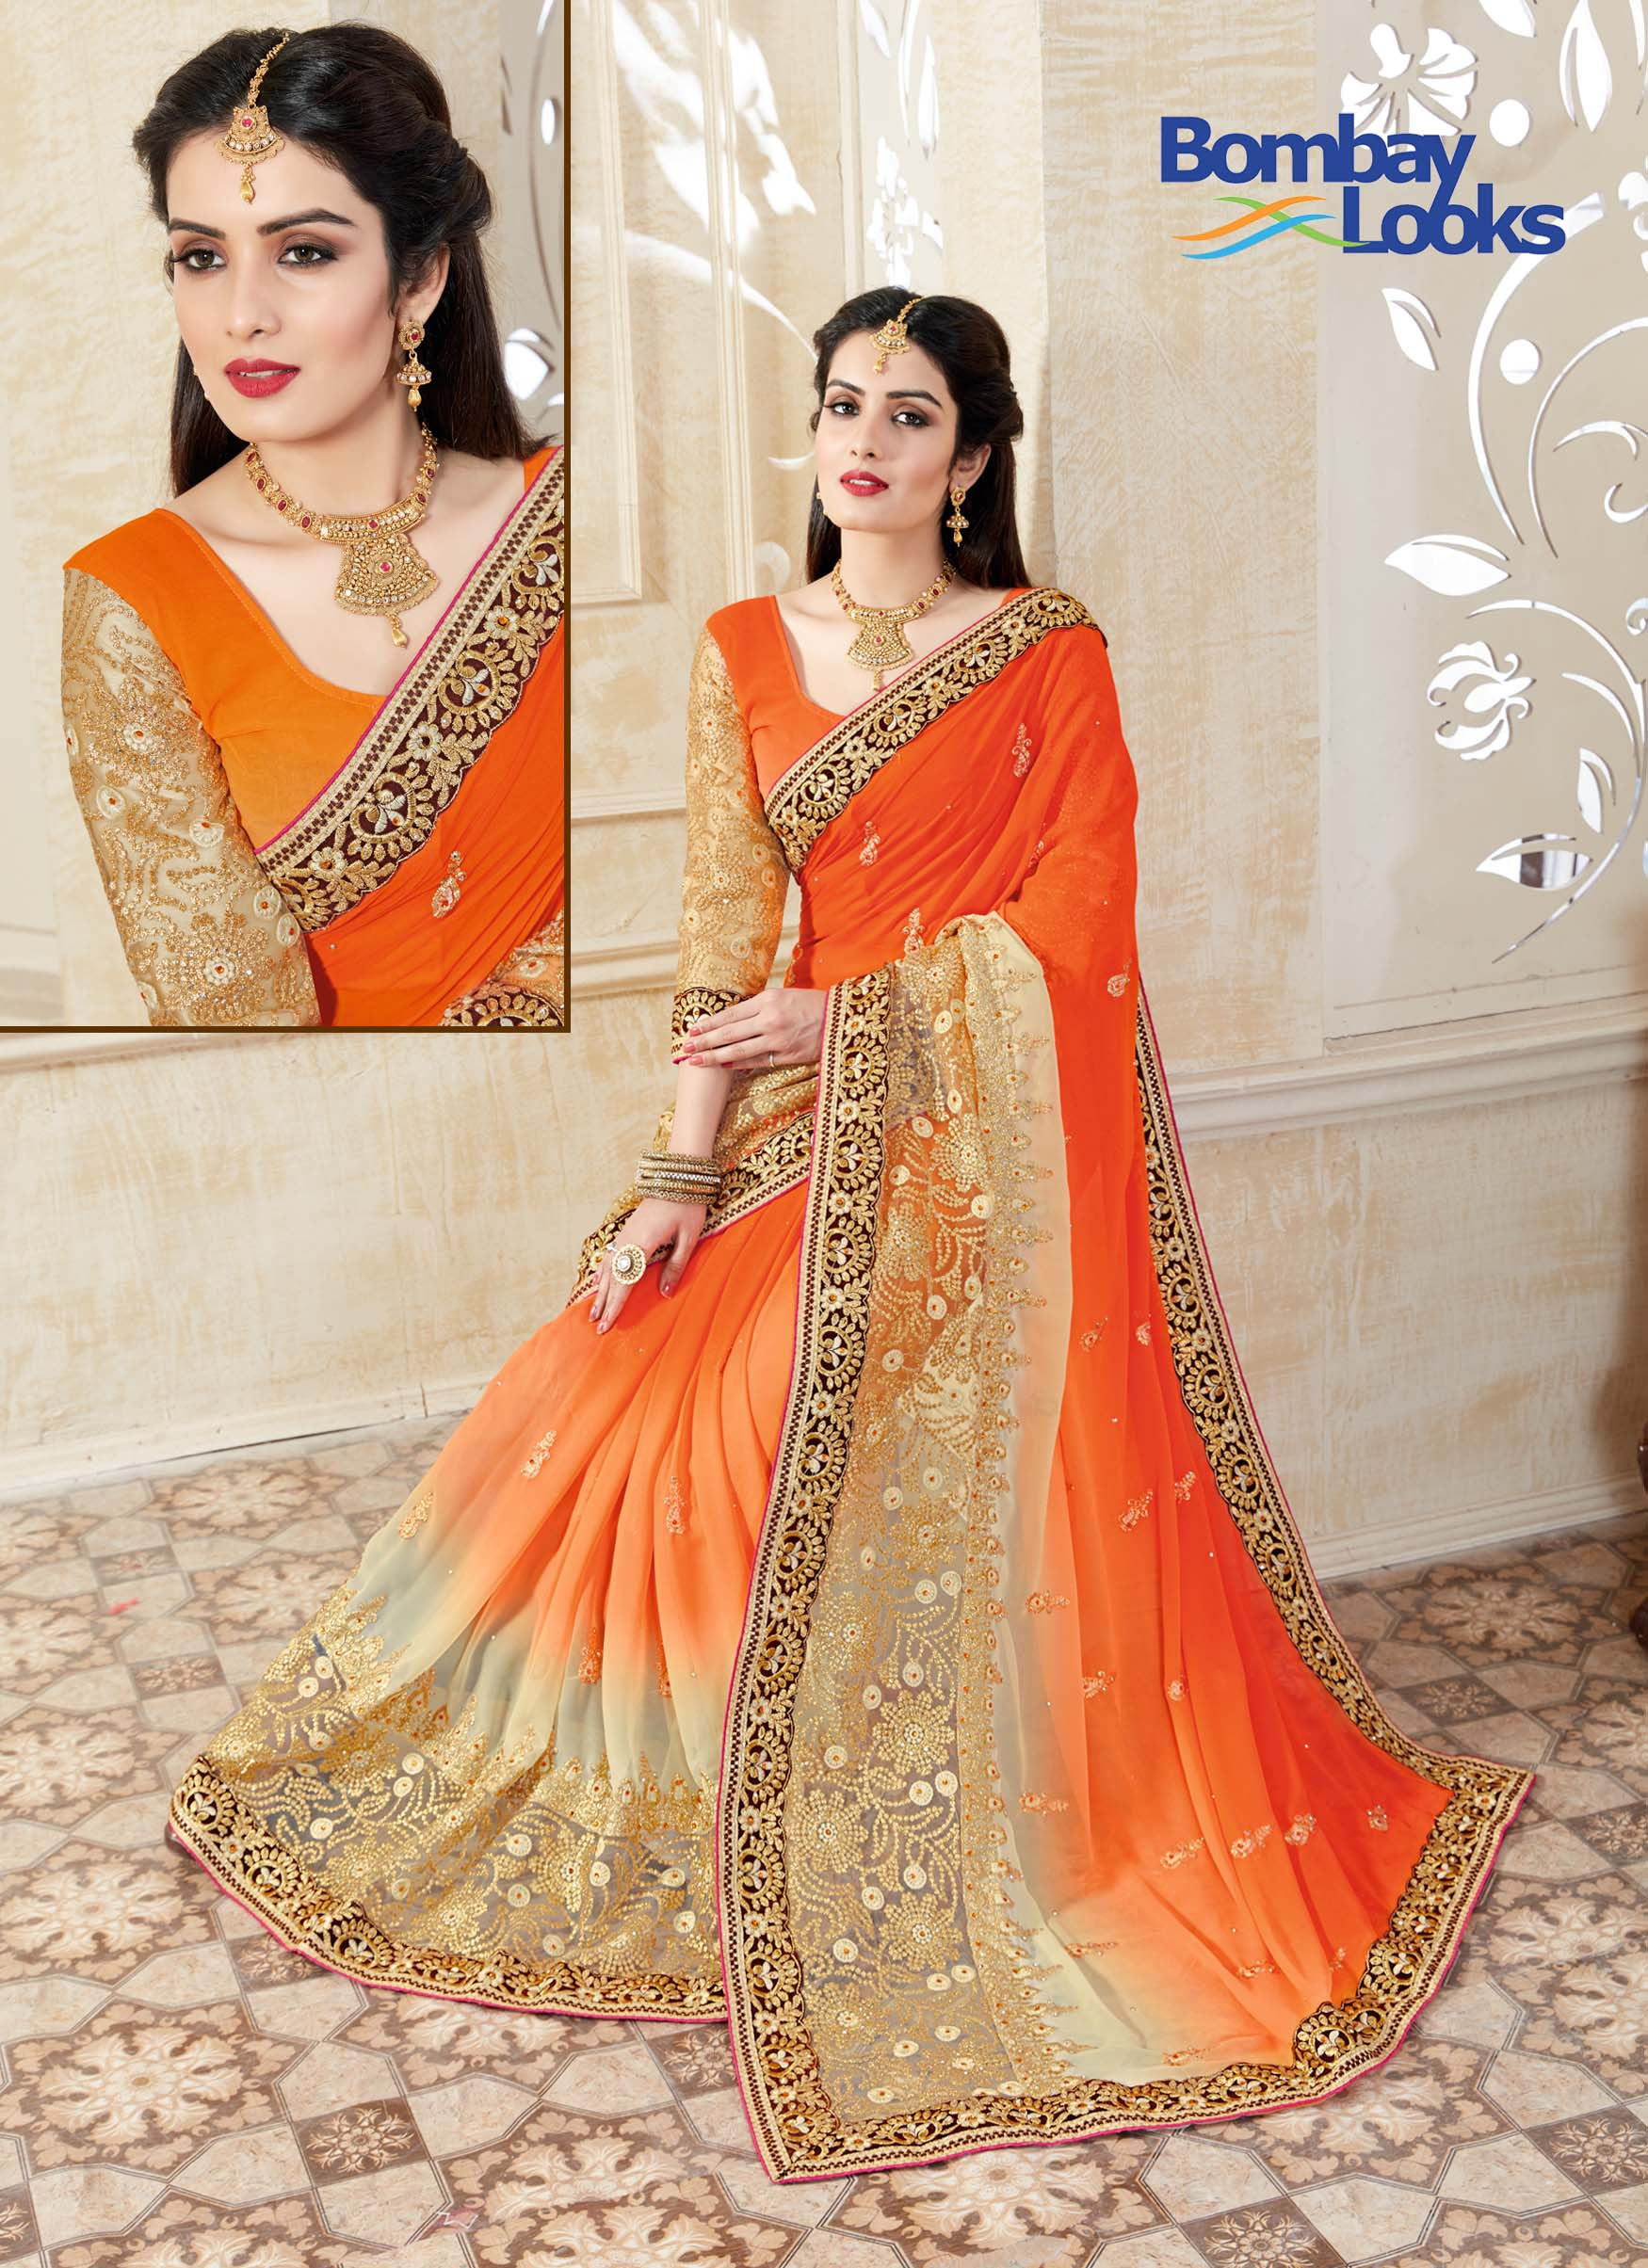 Elegant caramel and orange coloured ombre saree with golden embroidery and black border